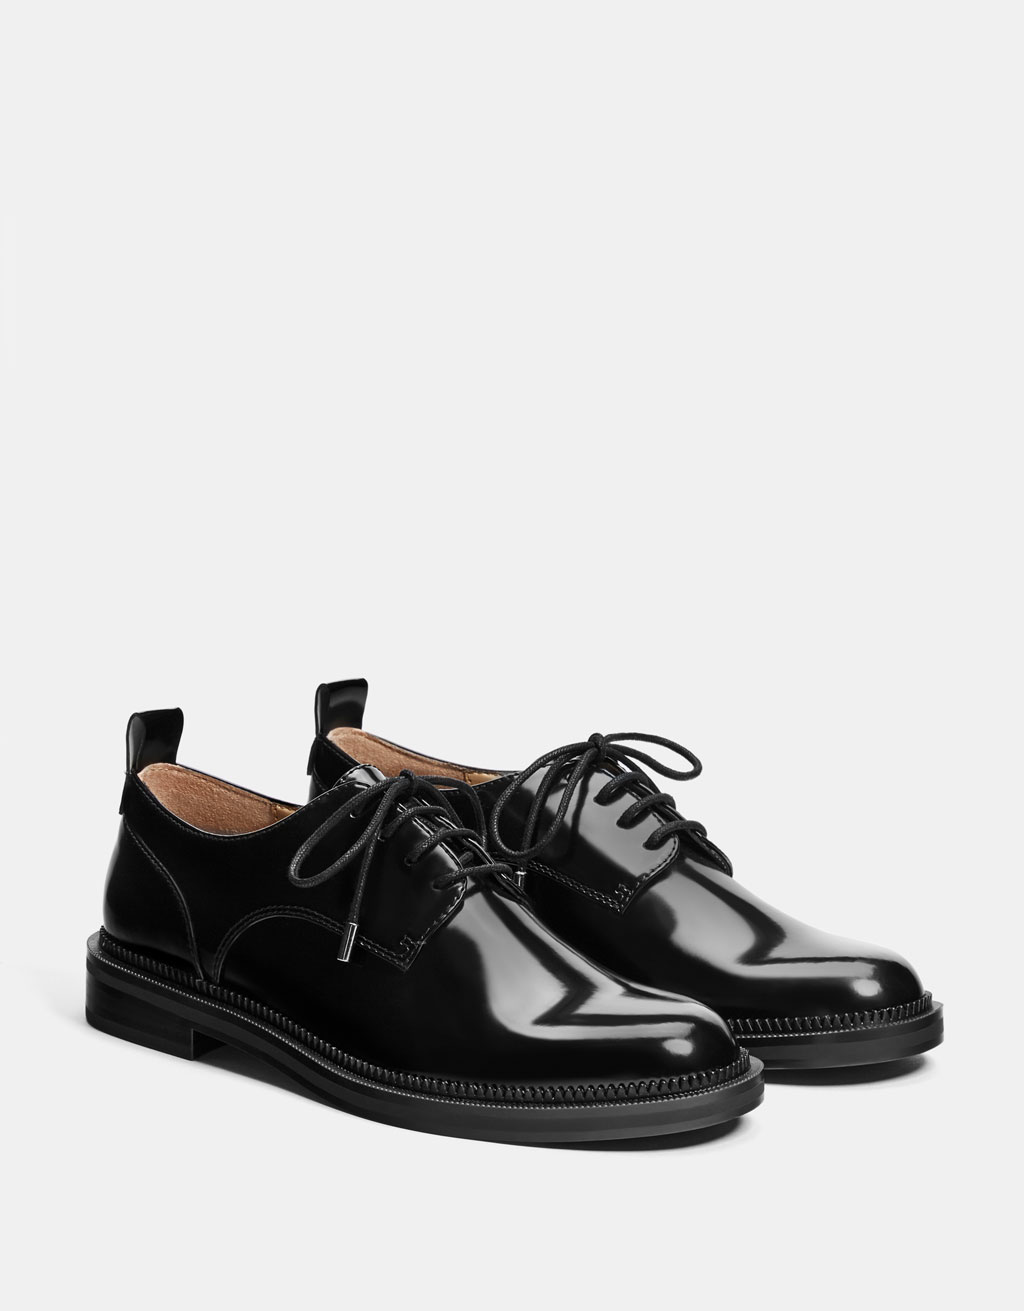 Black dress derby shoes